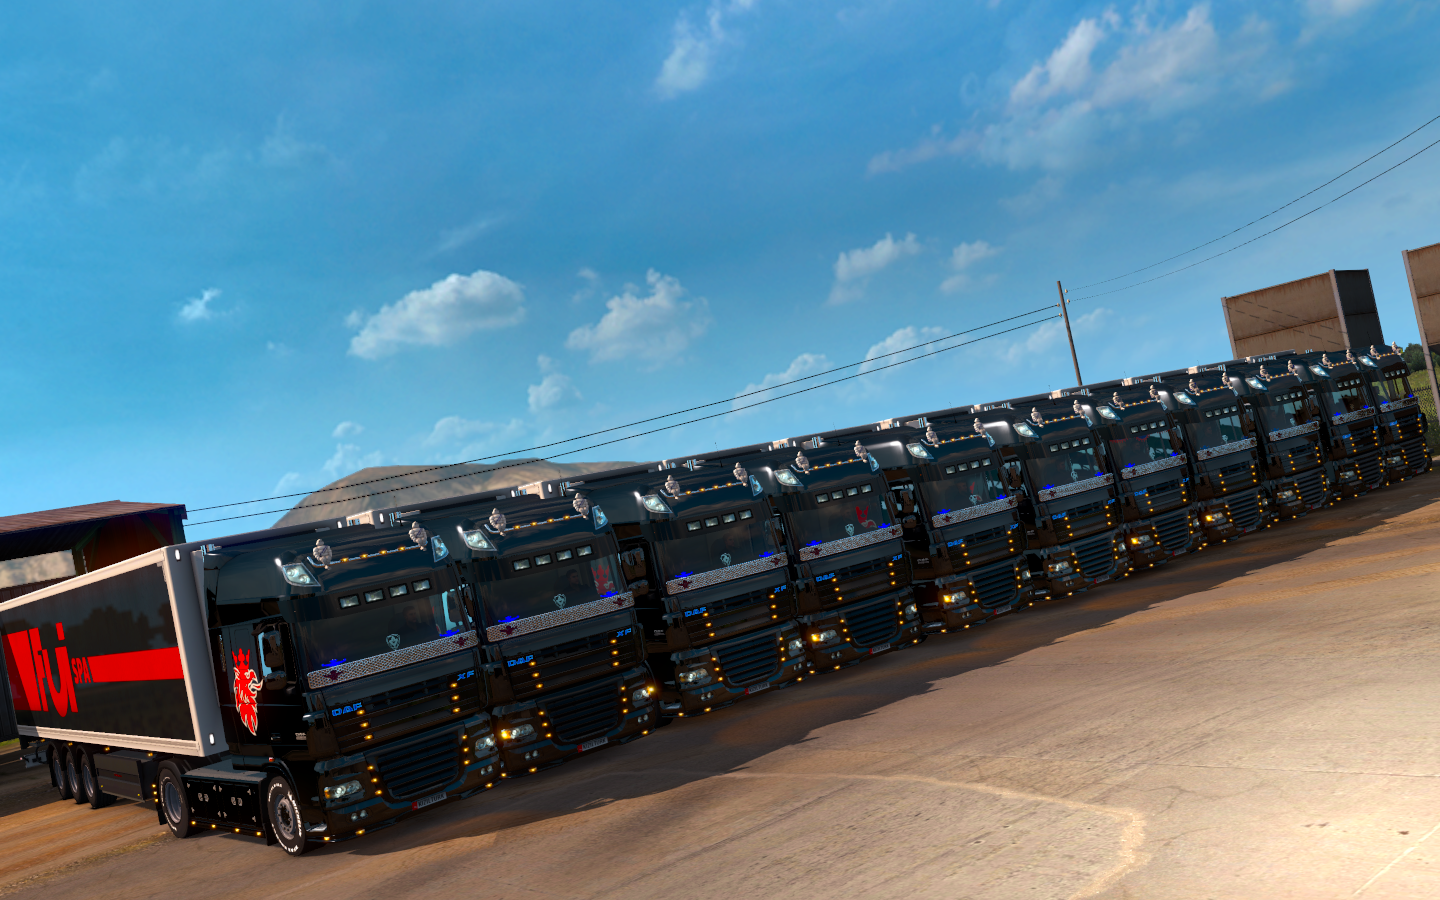 ets2_20190615_205714_00.png